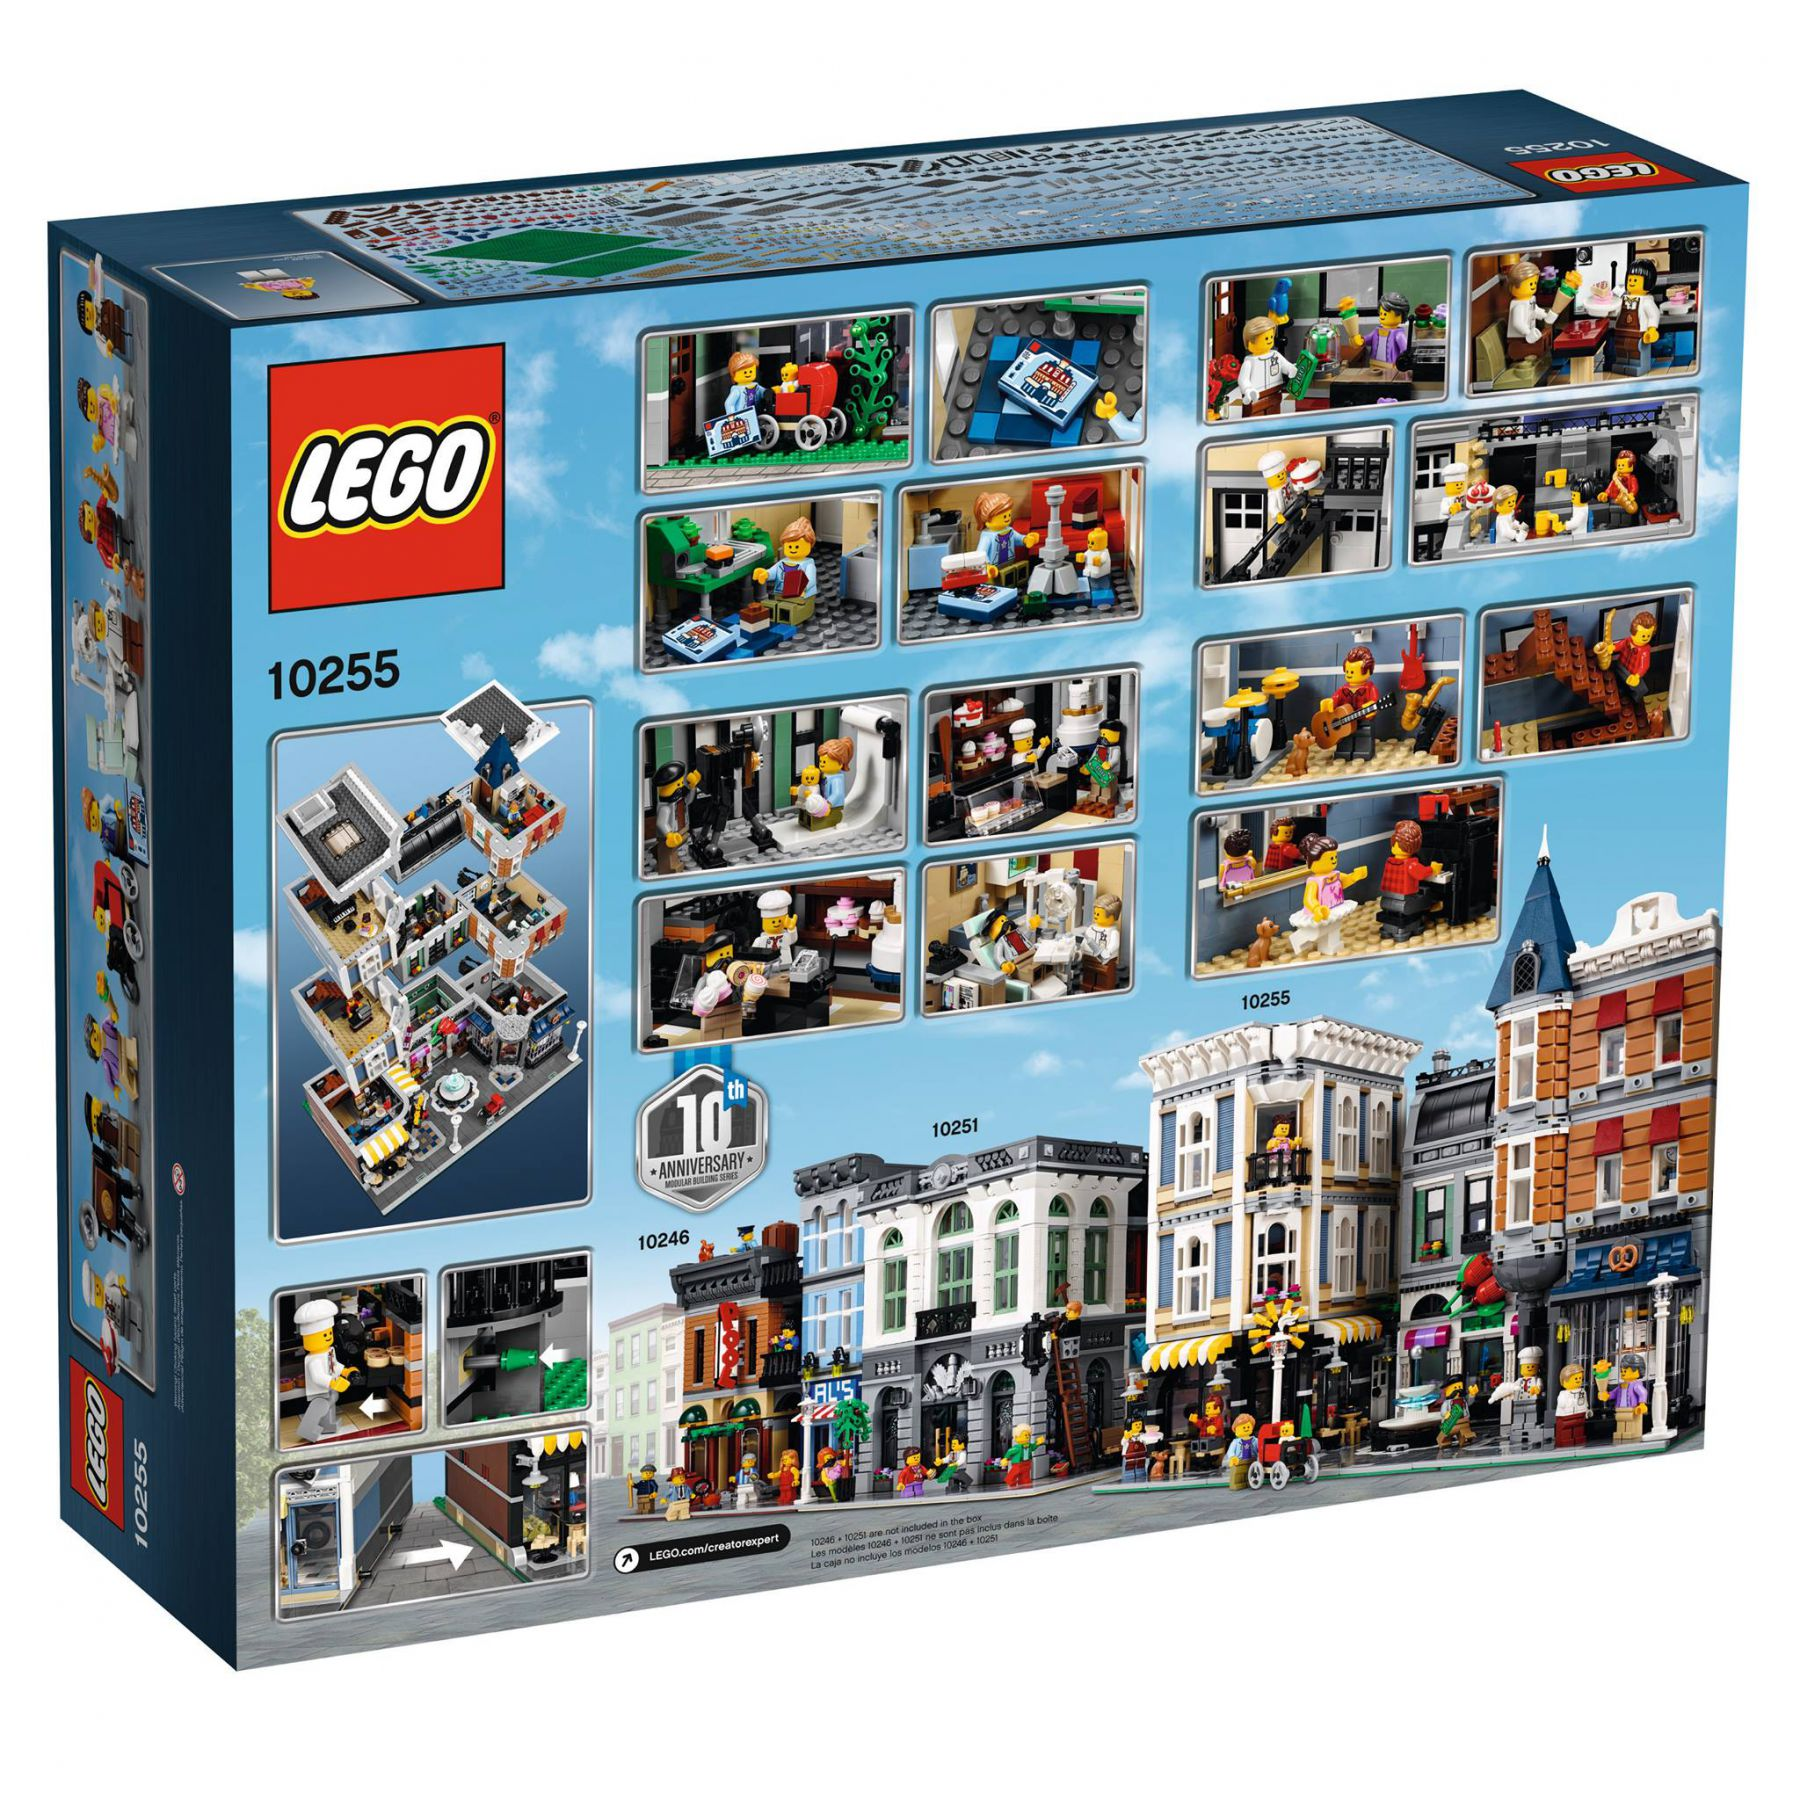 LEGO Advanced Models 10255 Stadtleben (Assembly Square) LEGO_10255_box-back.jpg